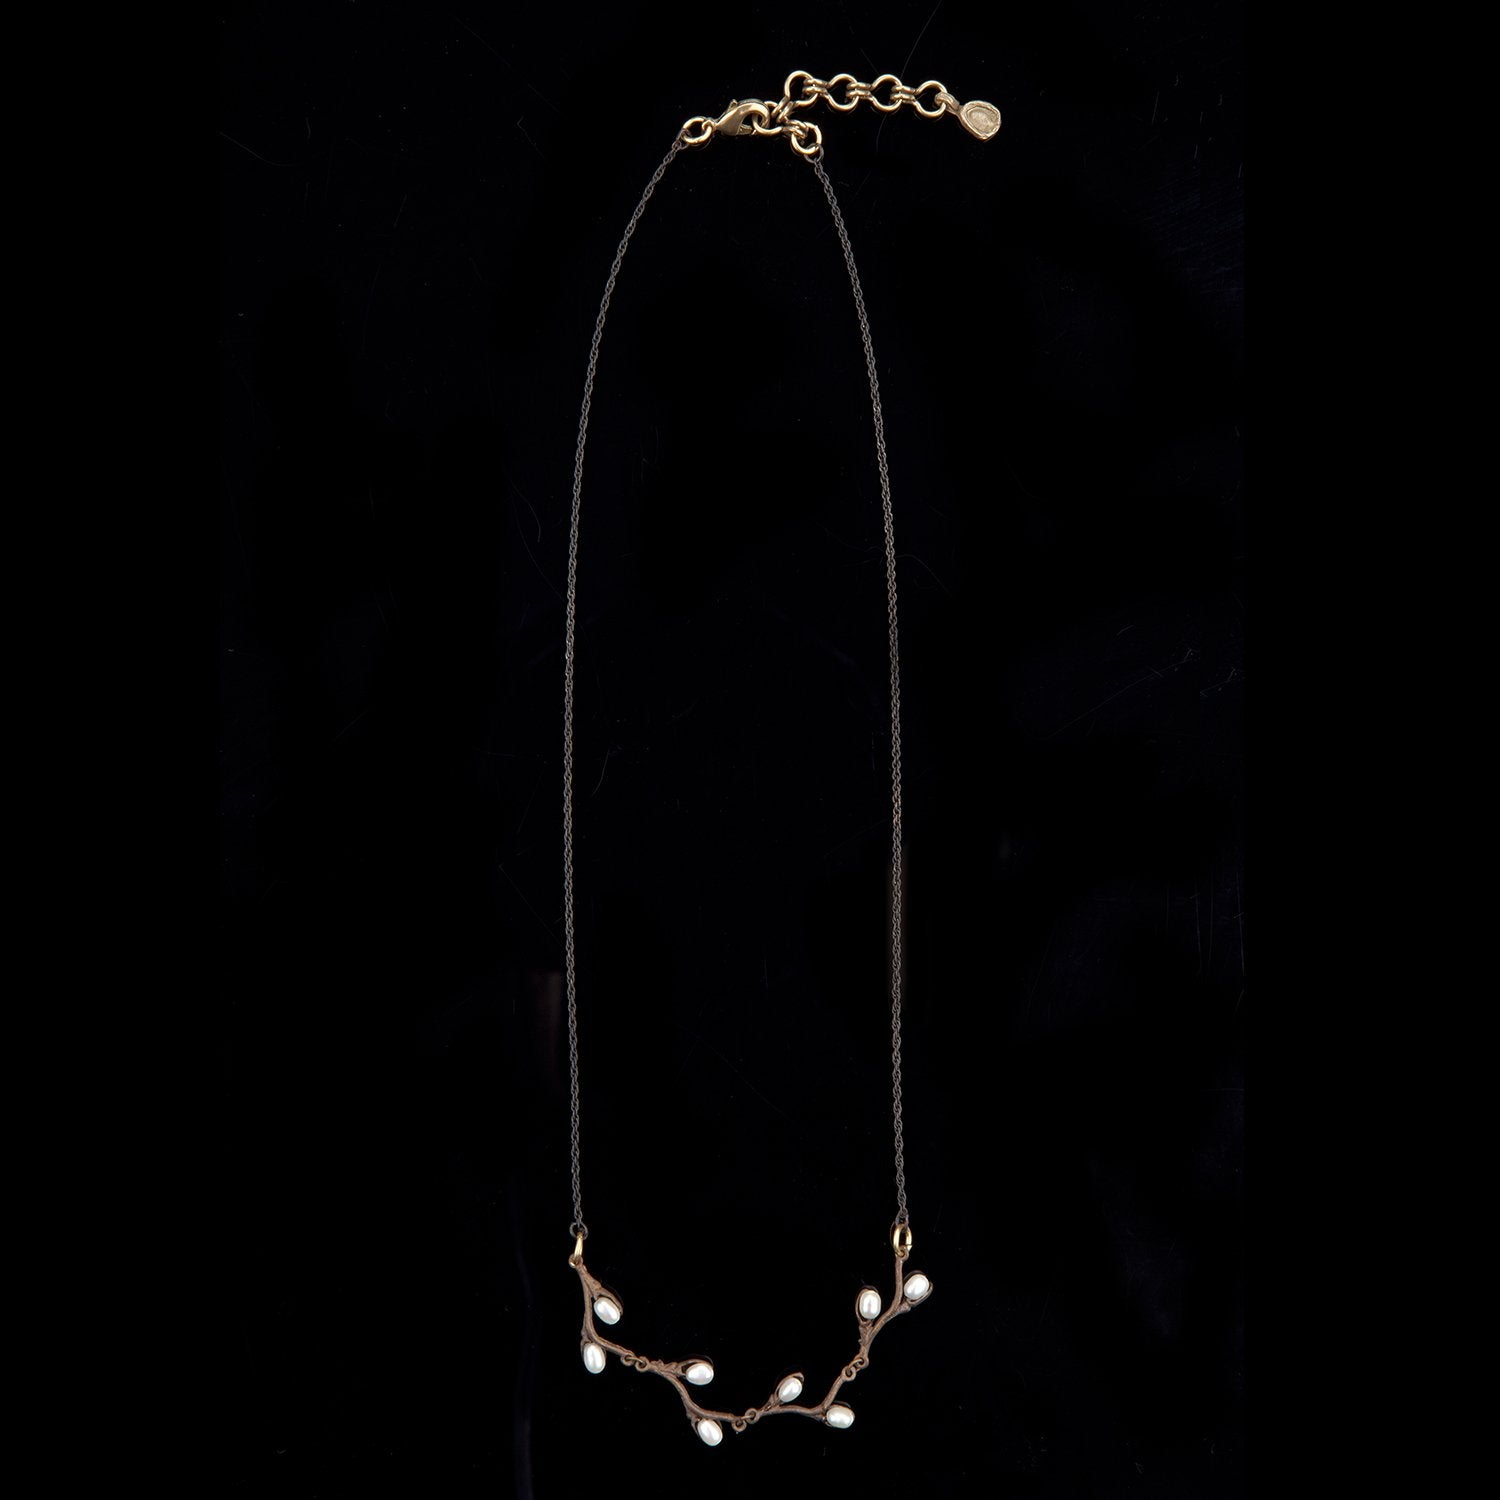 Pussy Willow Necklace - Contour Chain